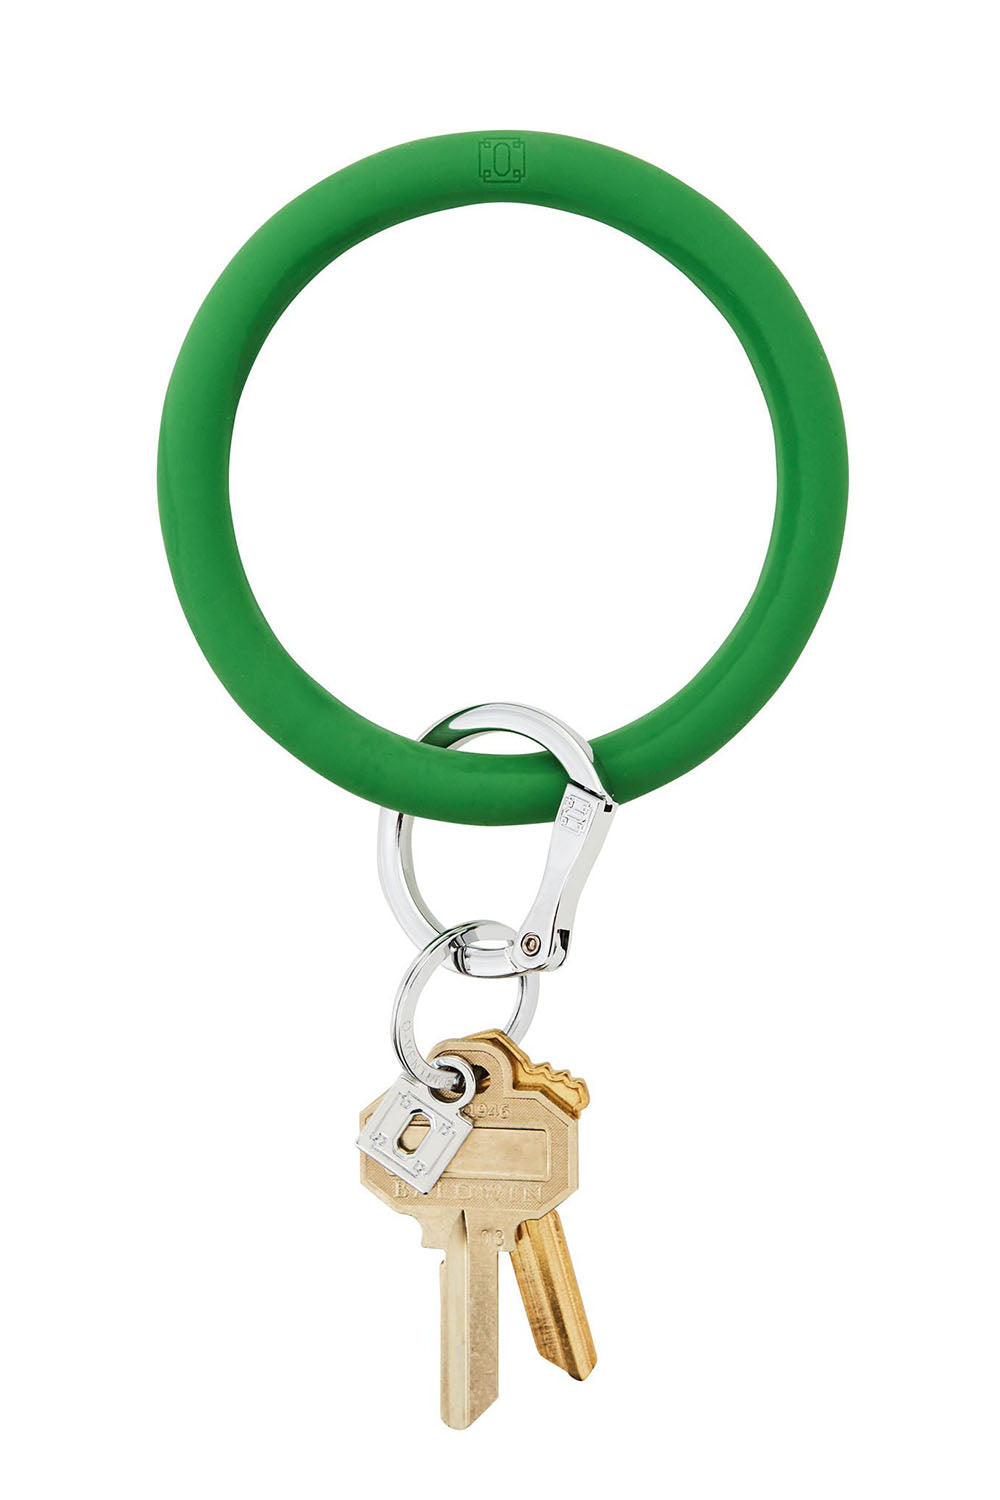 The BIG O Key Ring *Silicone* - Shamrock Green